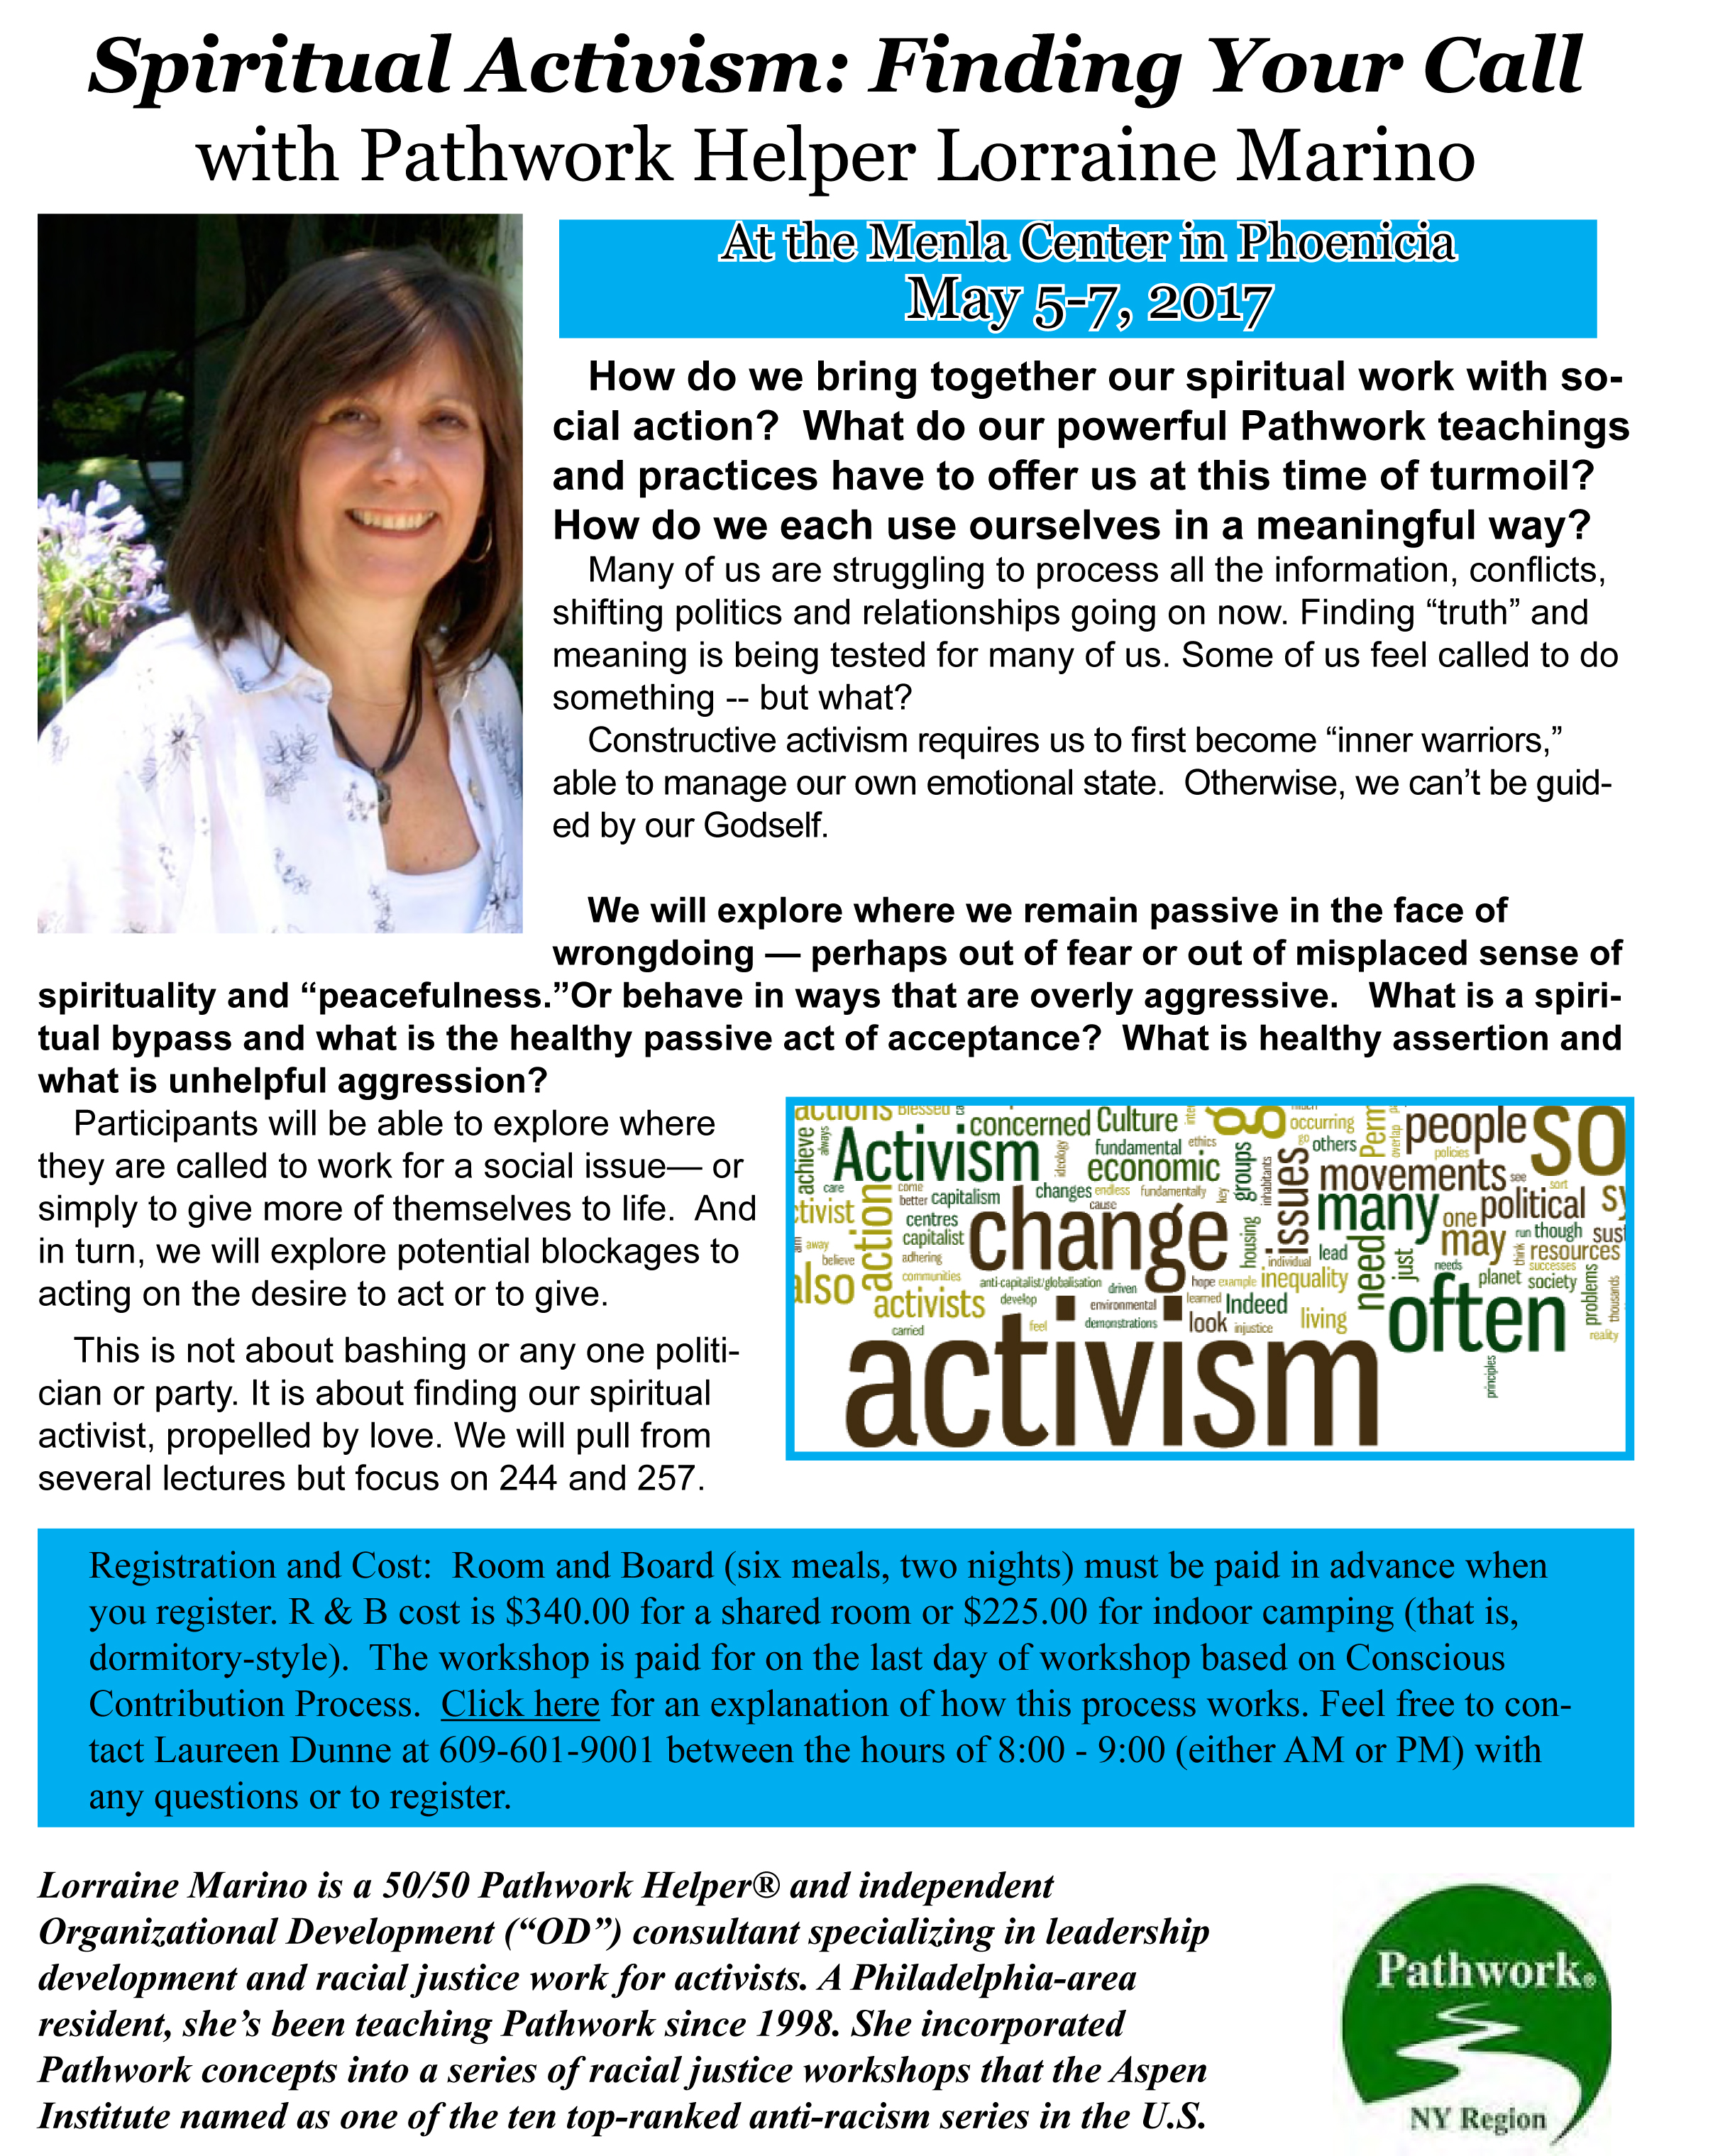 Spiritual Activism Workshop Flyer